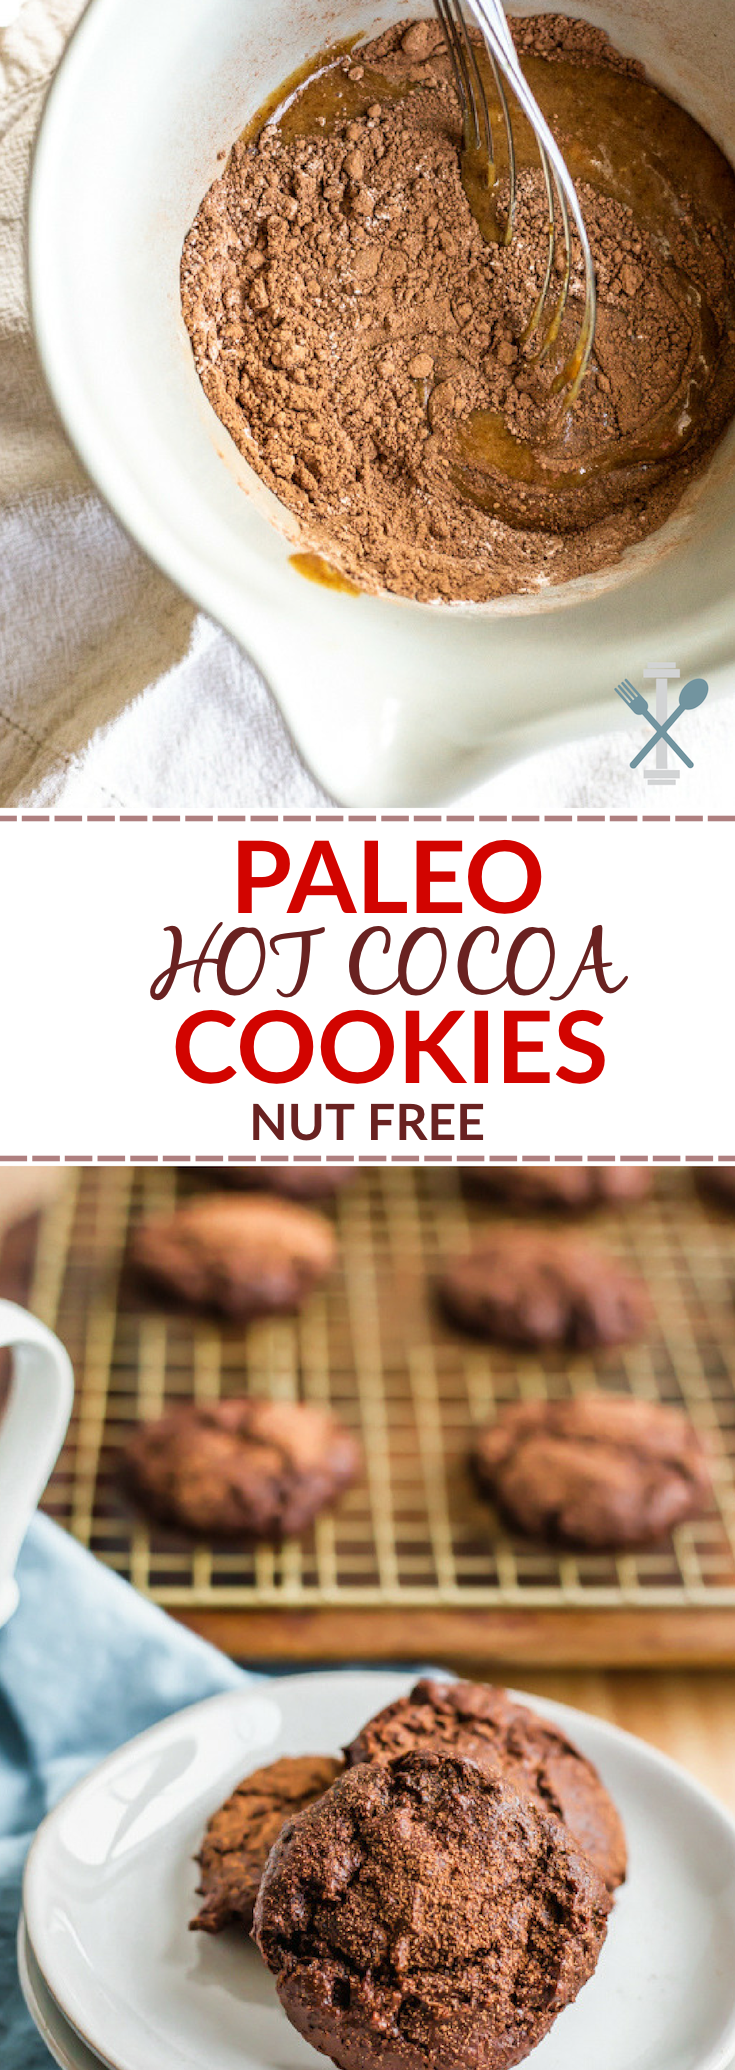 These paleo hot cocoa cookies are a nut free, dairy free holiday treat with a decadent, chewy inside. Grain free and naturally sweetened